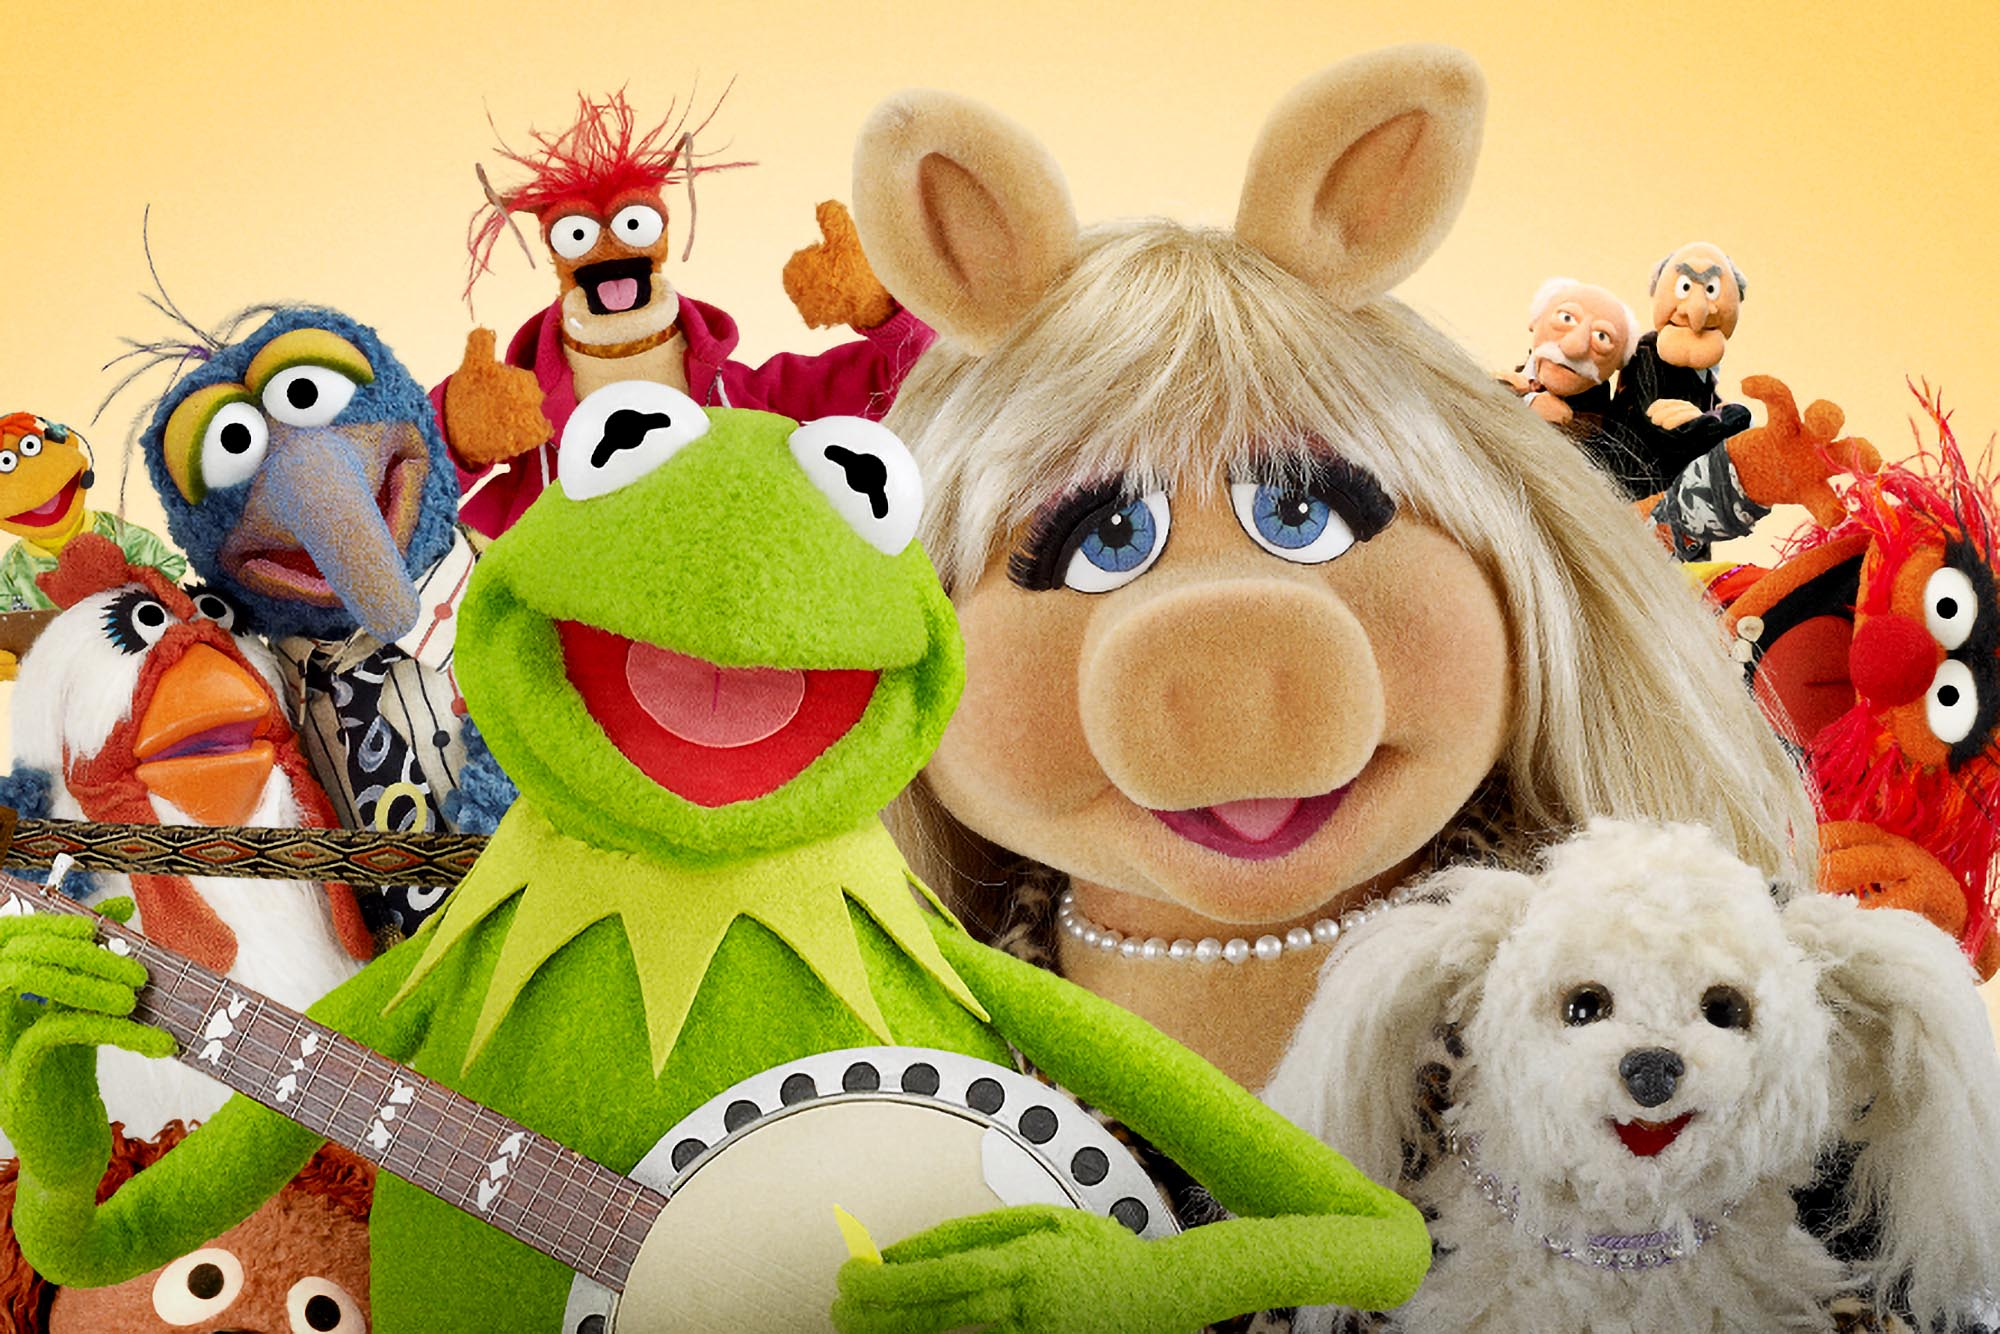 news.virginia.edu: What the Muppets Can Teach Us About Generational Influences and Origins